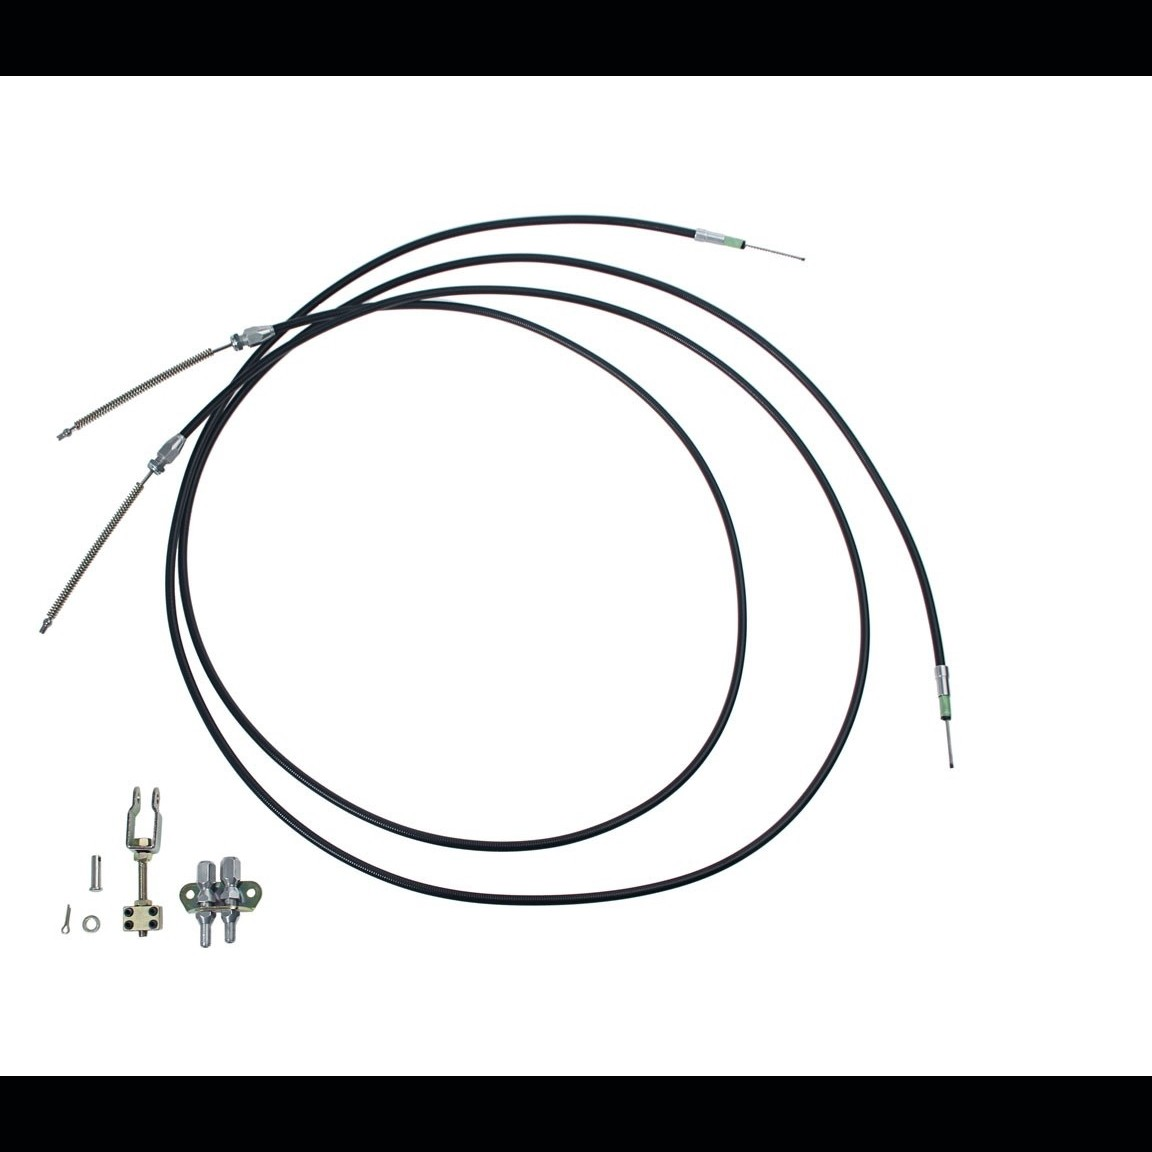 c6 corvette transmission wiring harness